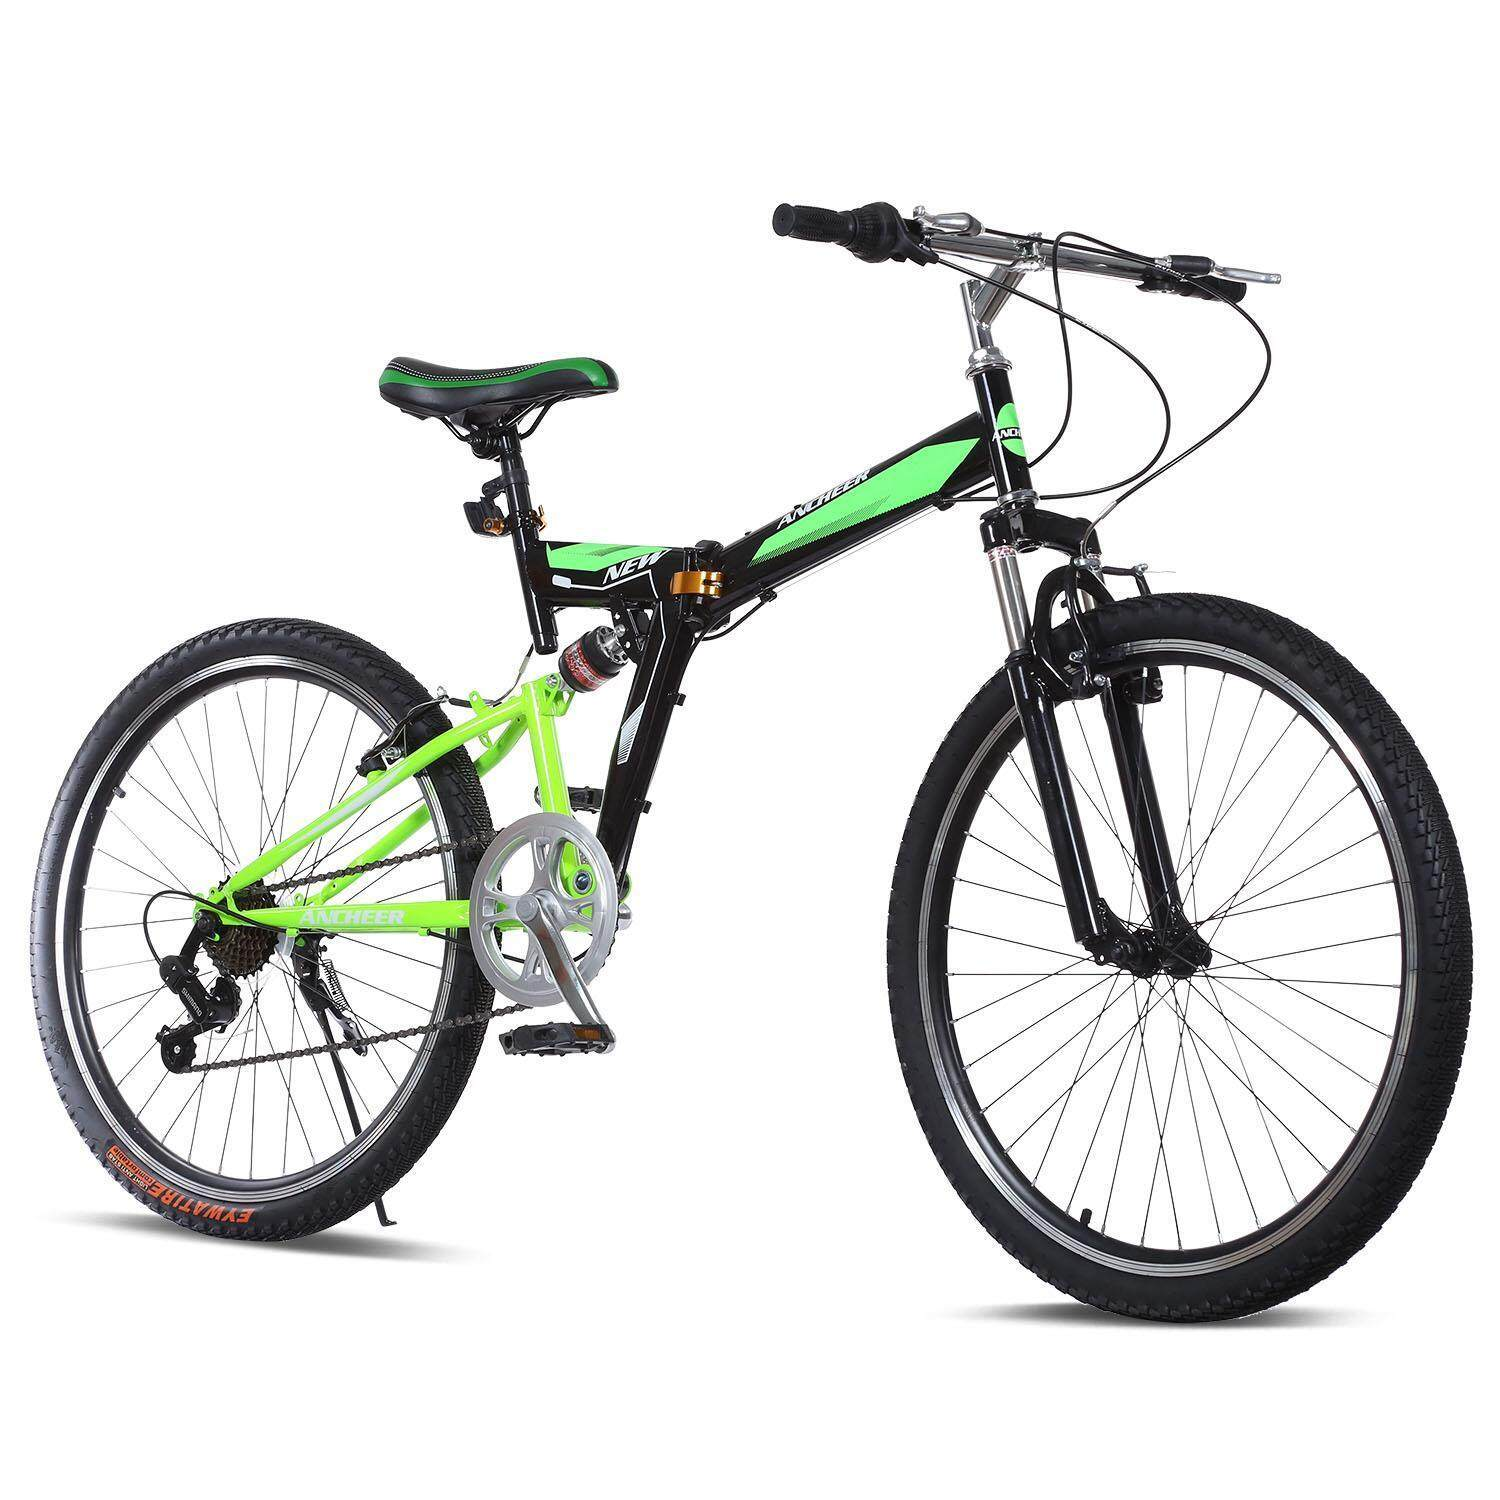 Supercart Ancheer 26-Inch 7 Speed Folding Dual Suspension Mountain Bike By Supercart.